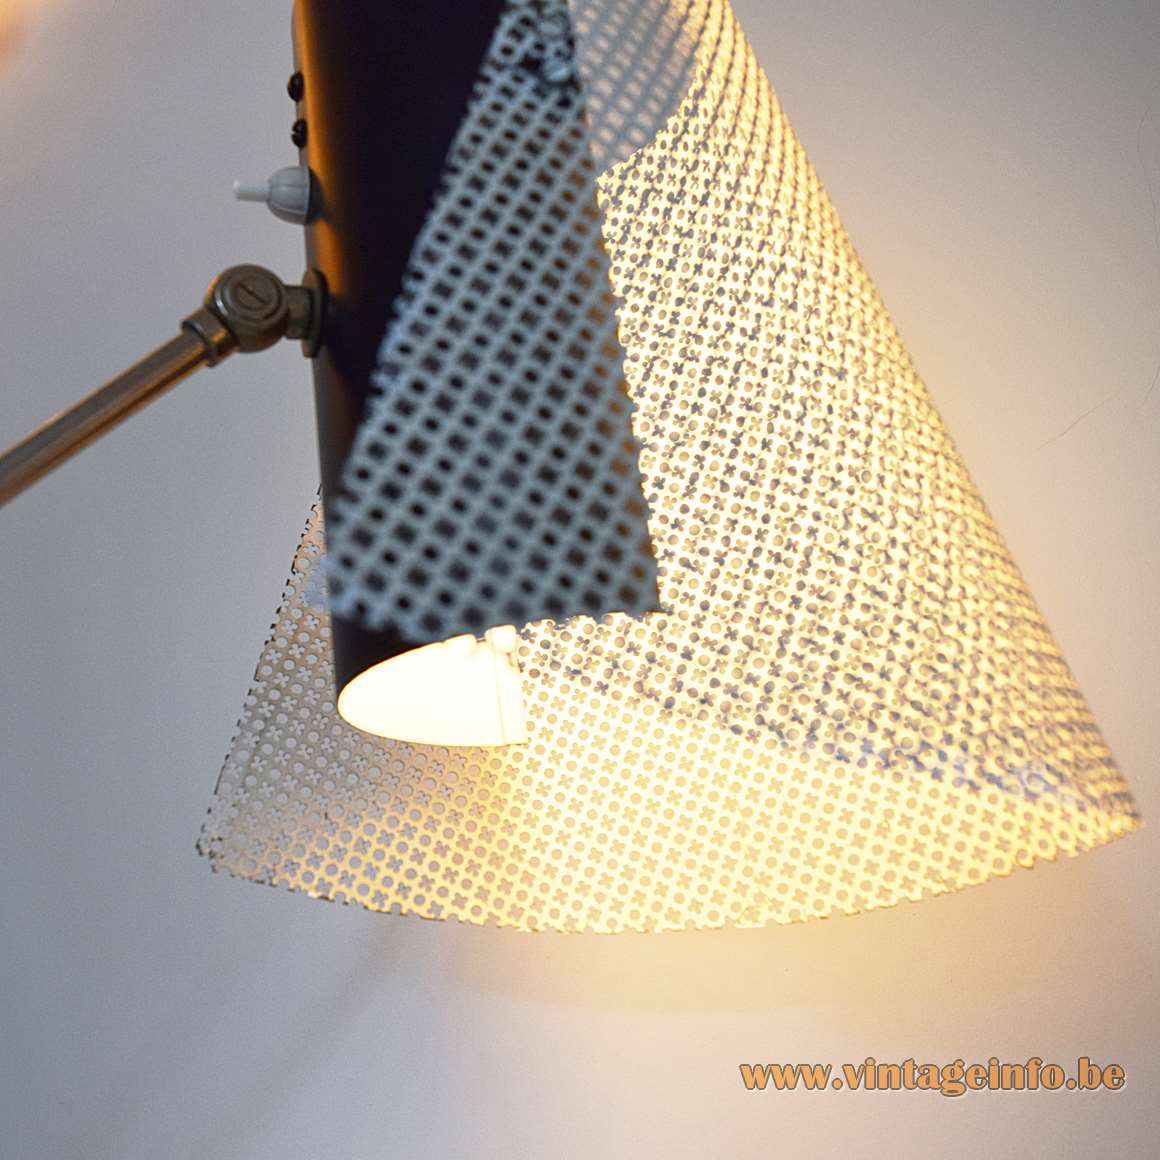 1950s metal floor lamp with perforated lampshade white black iron rods Artiforte Artimeta The Netherlands 1960s